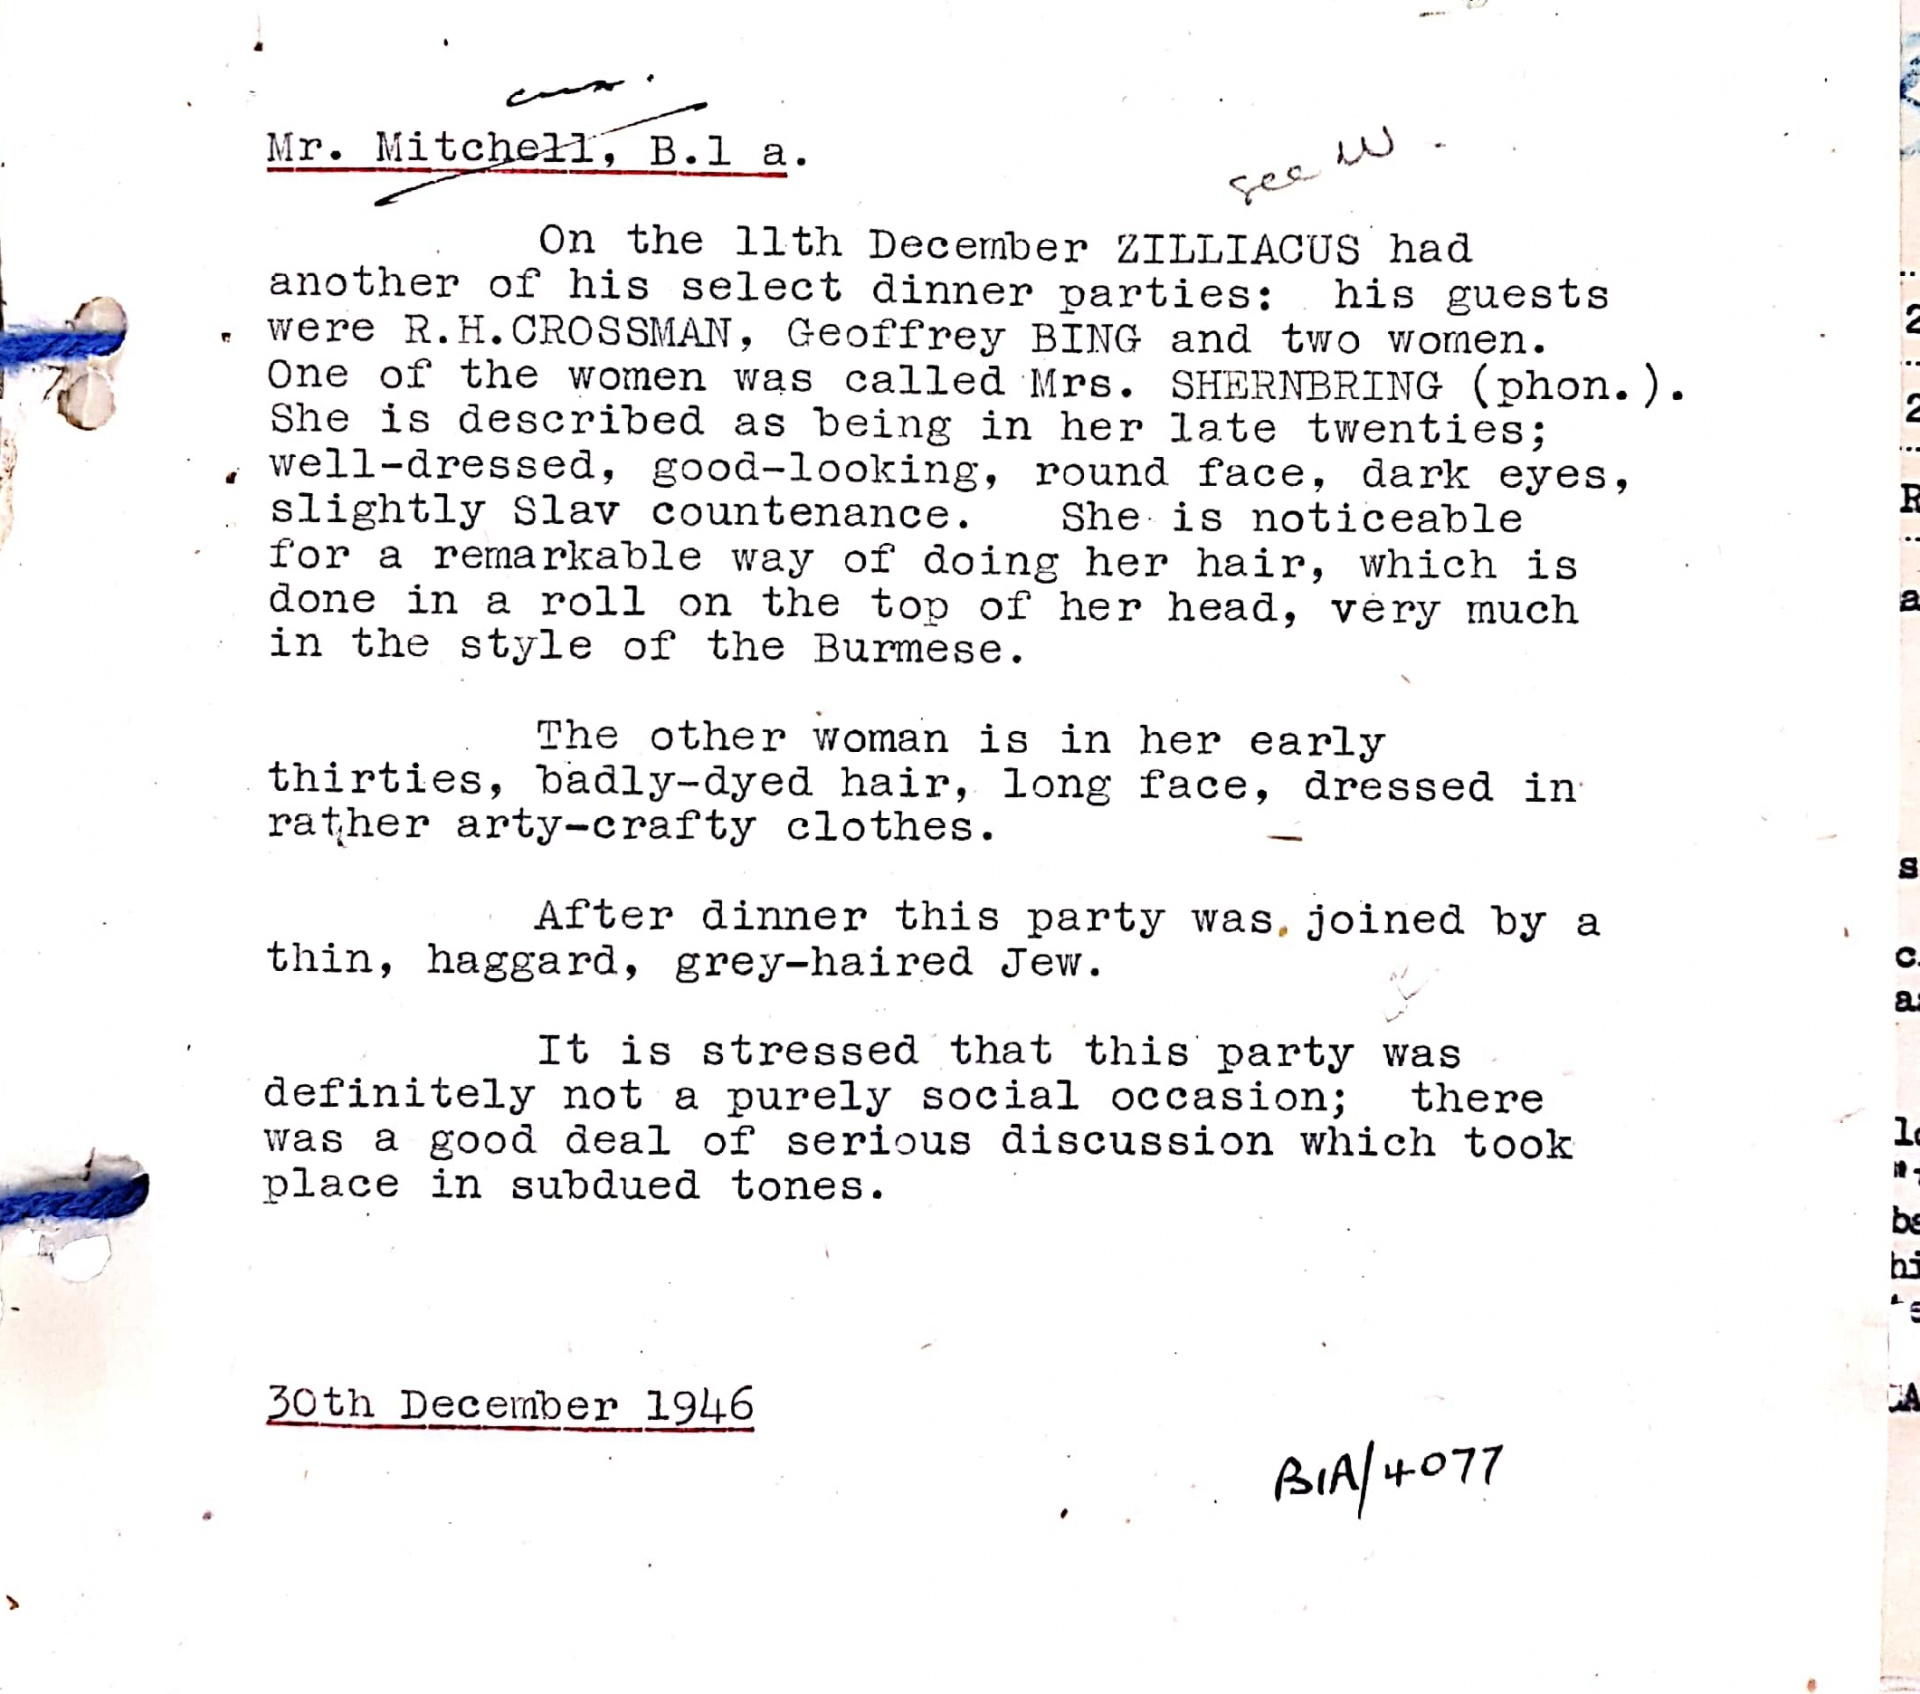 """MI5 spied on a dinner party held by Labour MP Konni Zilliacus in 1946. One guest was described as having """"badly-dyed hair, long face, dressed in rather arty-crafty clothes""""."""